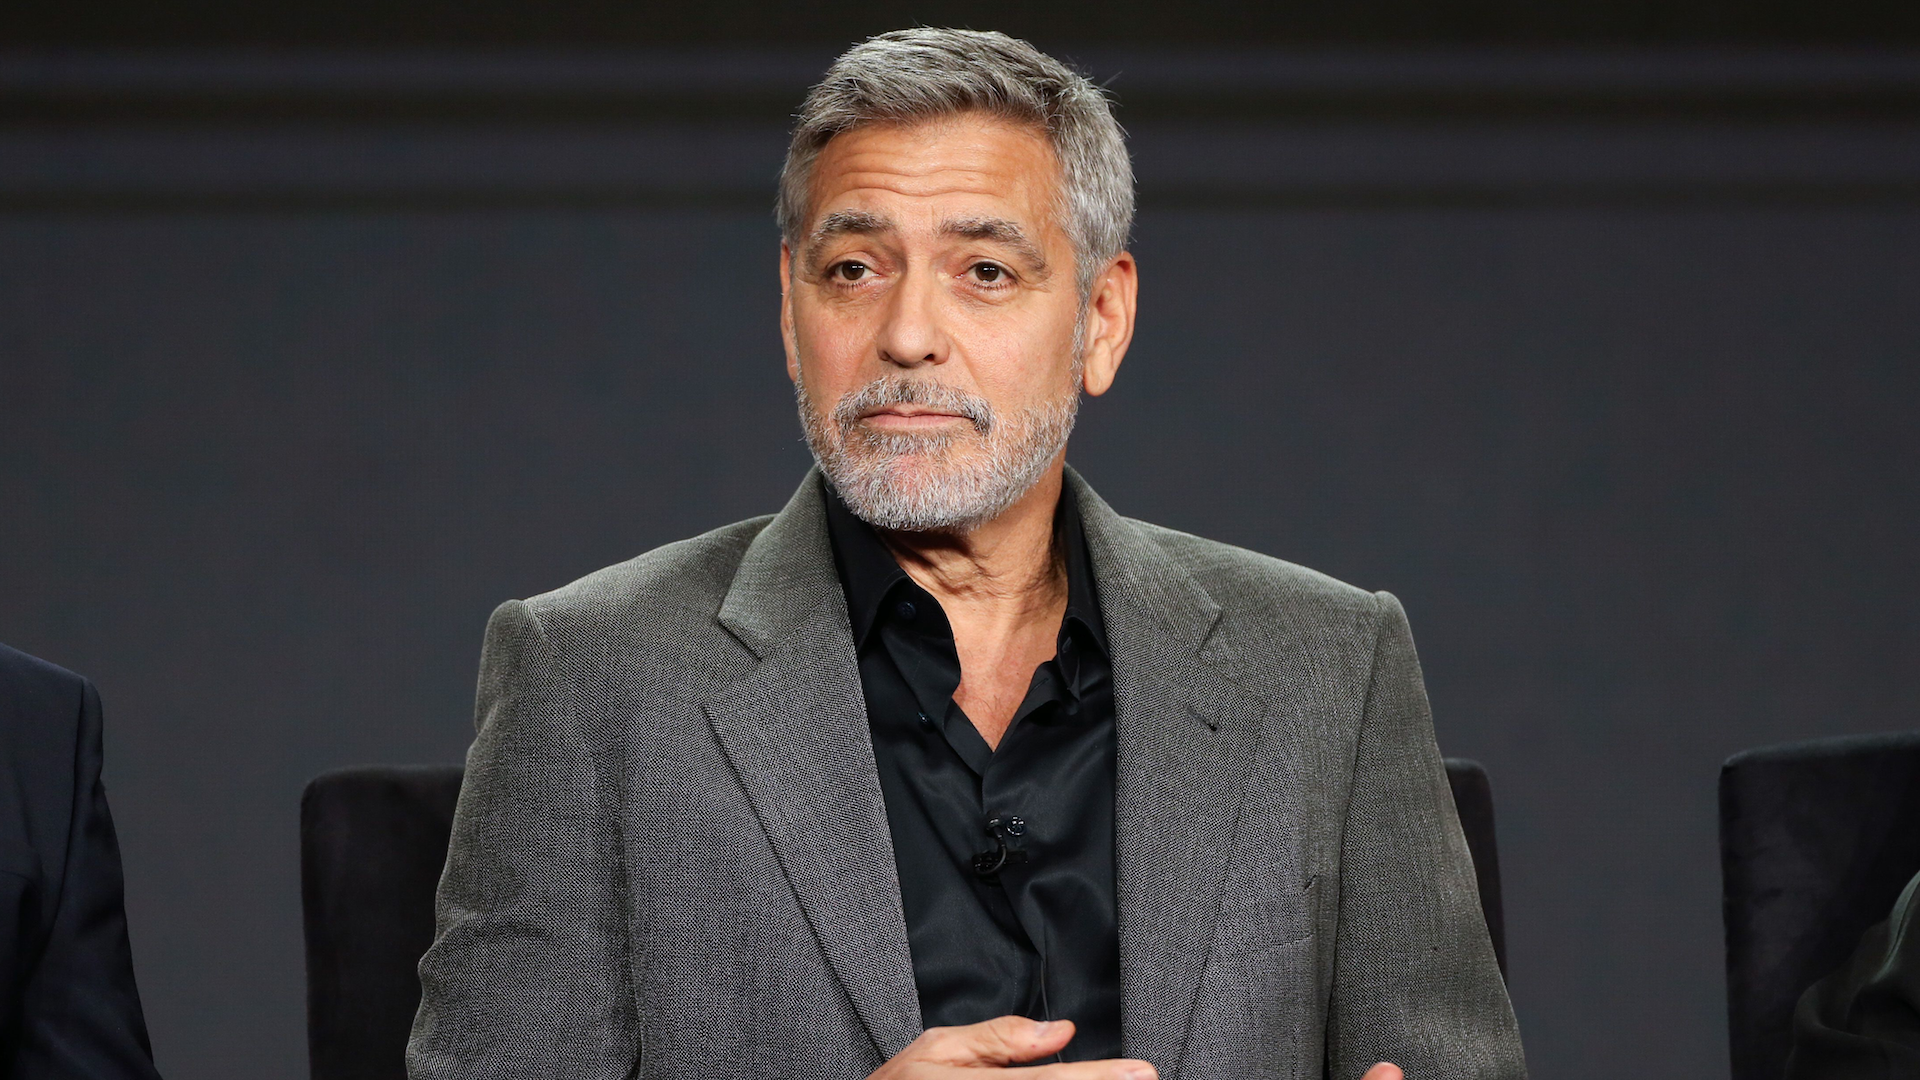 George Clooney Comes to Meghan Markle's Defense, Says She ...